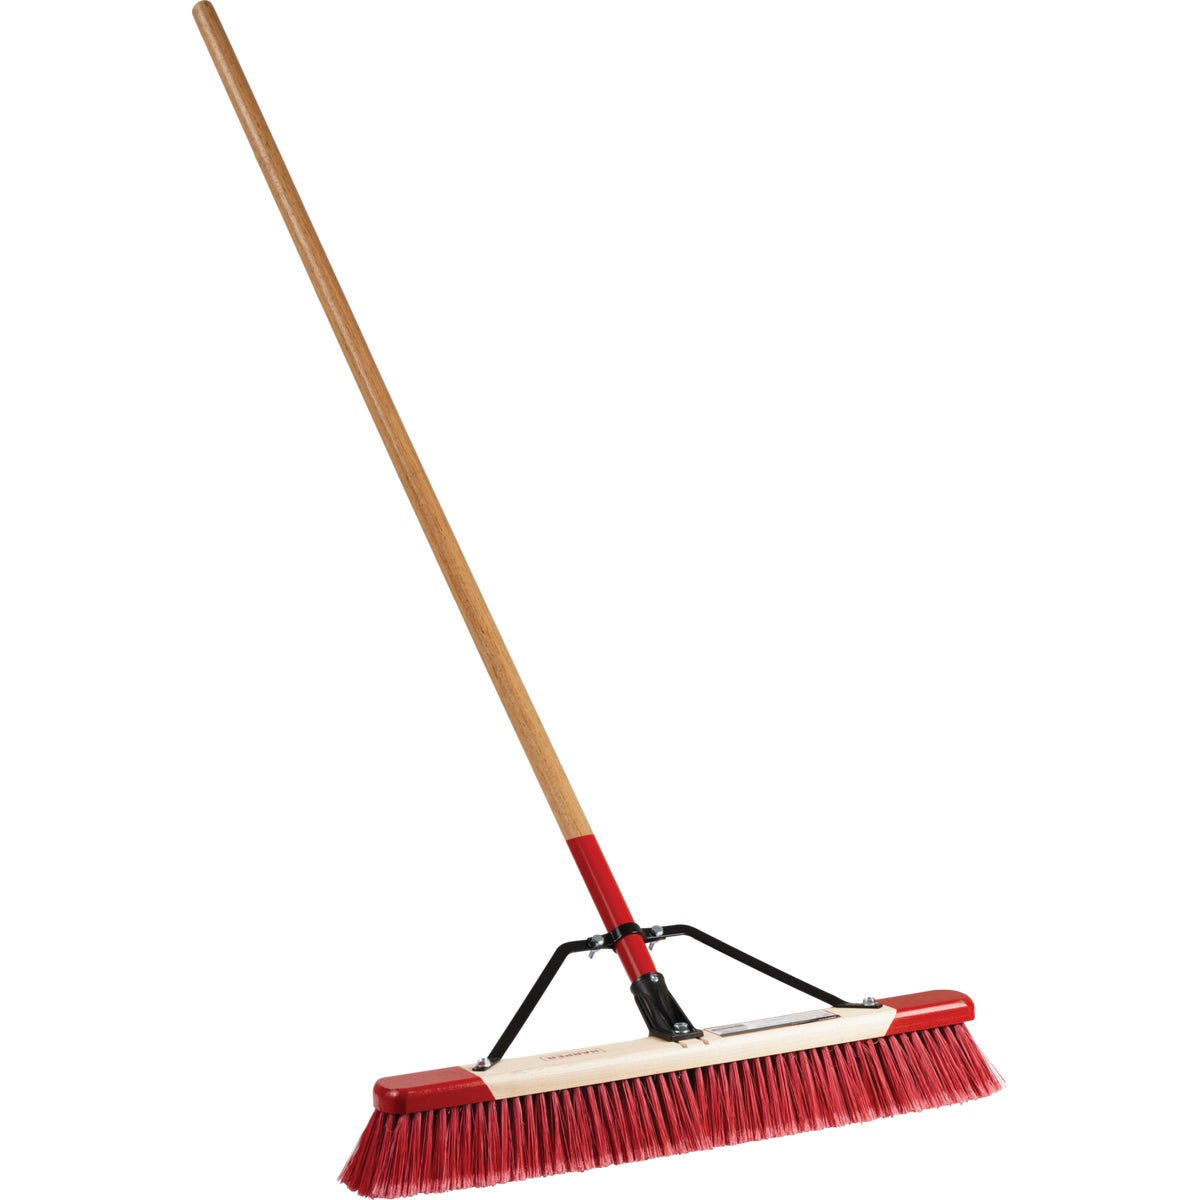 "24"" DRYWALL BROOM - 553024A by Harper Brush Incom"